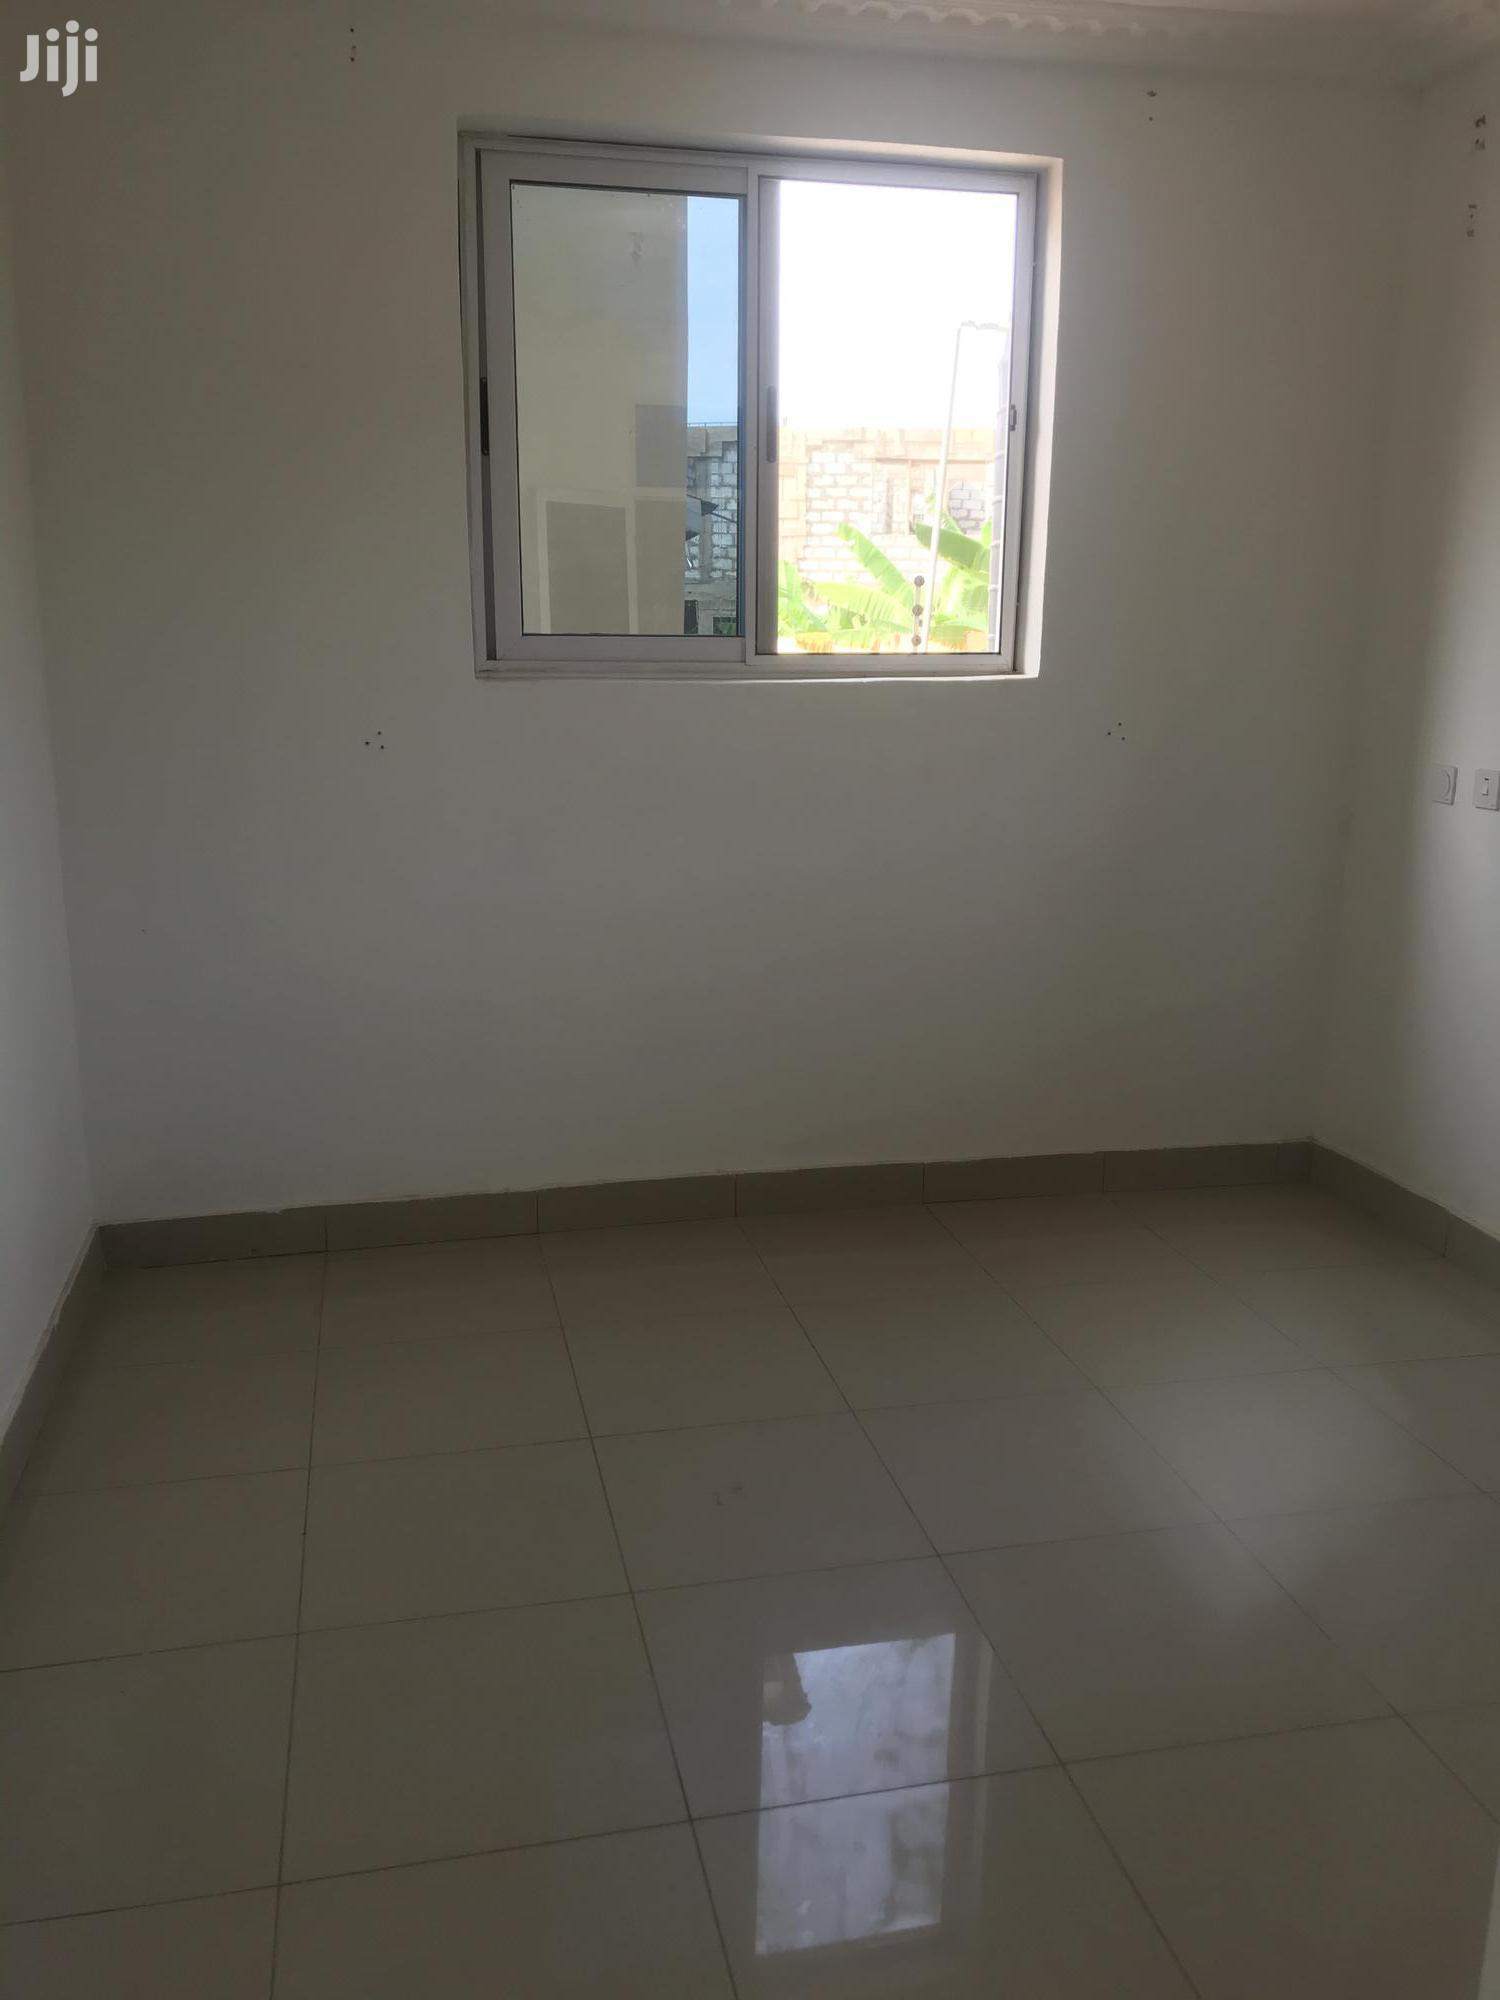 An Executive Chamber And Hall Self Contain At Agringanor For Rent | Houses & Apartments For Rent for sale in East Legon, Greater Accra, Ghana